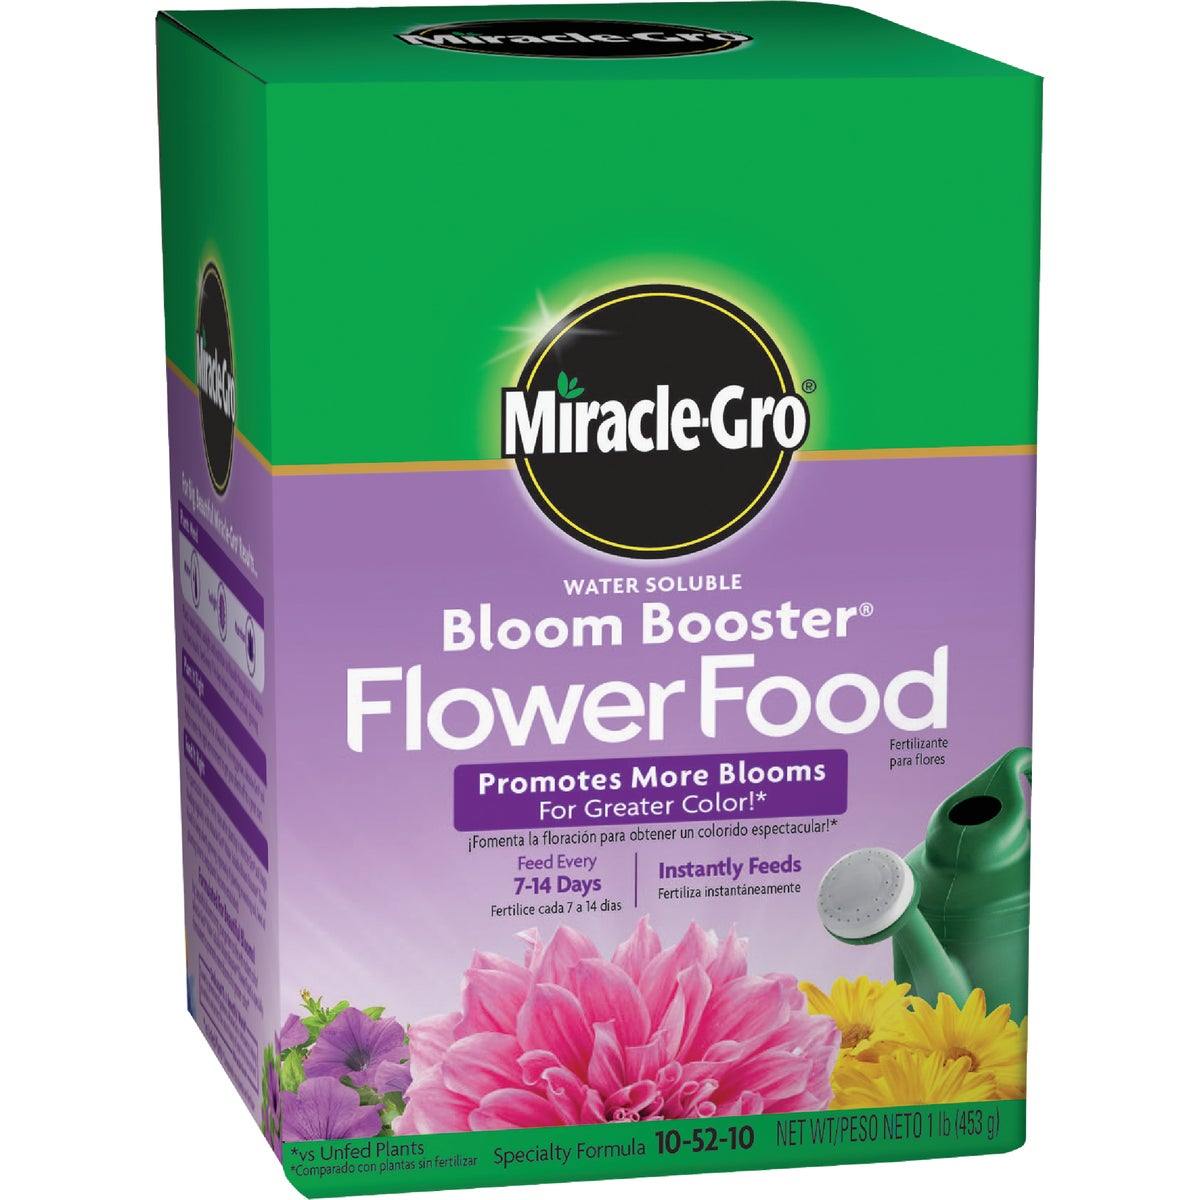 1# GP MG BLOOM BOOSTER - 1360011 by Scotts Company